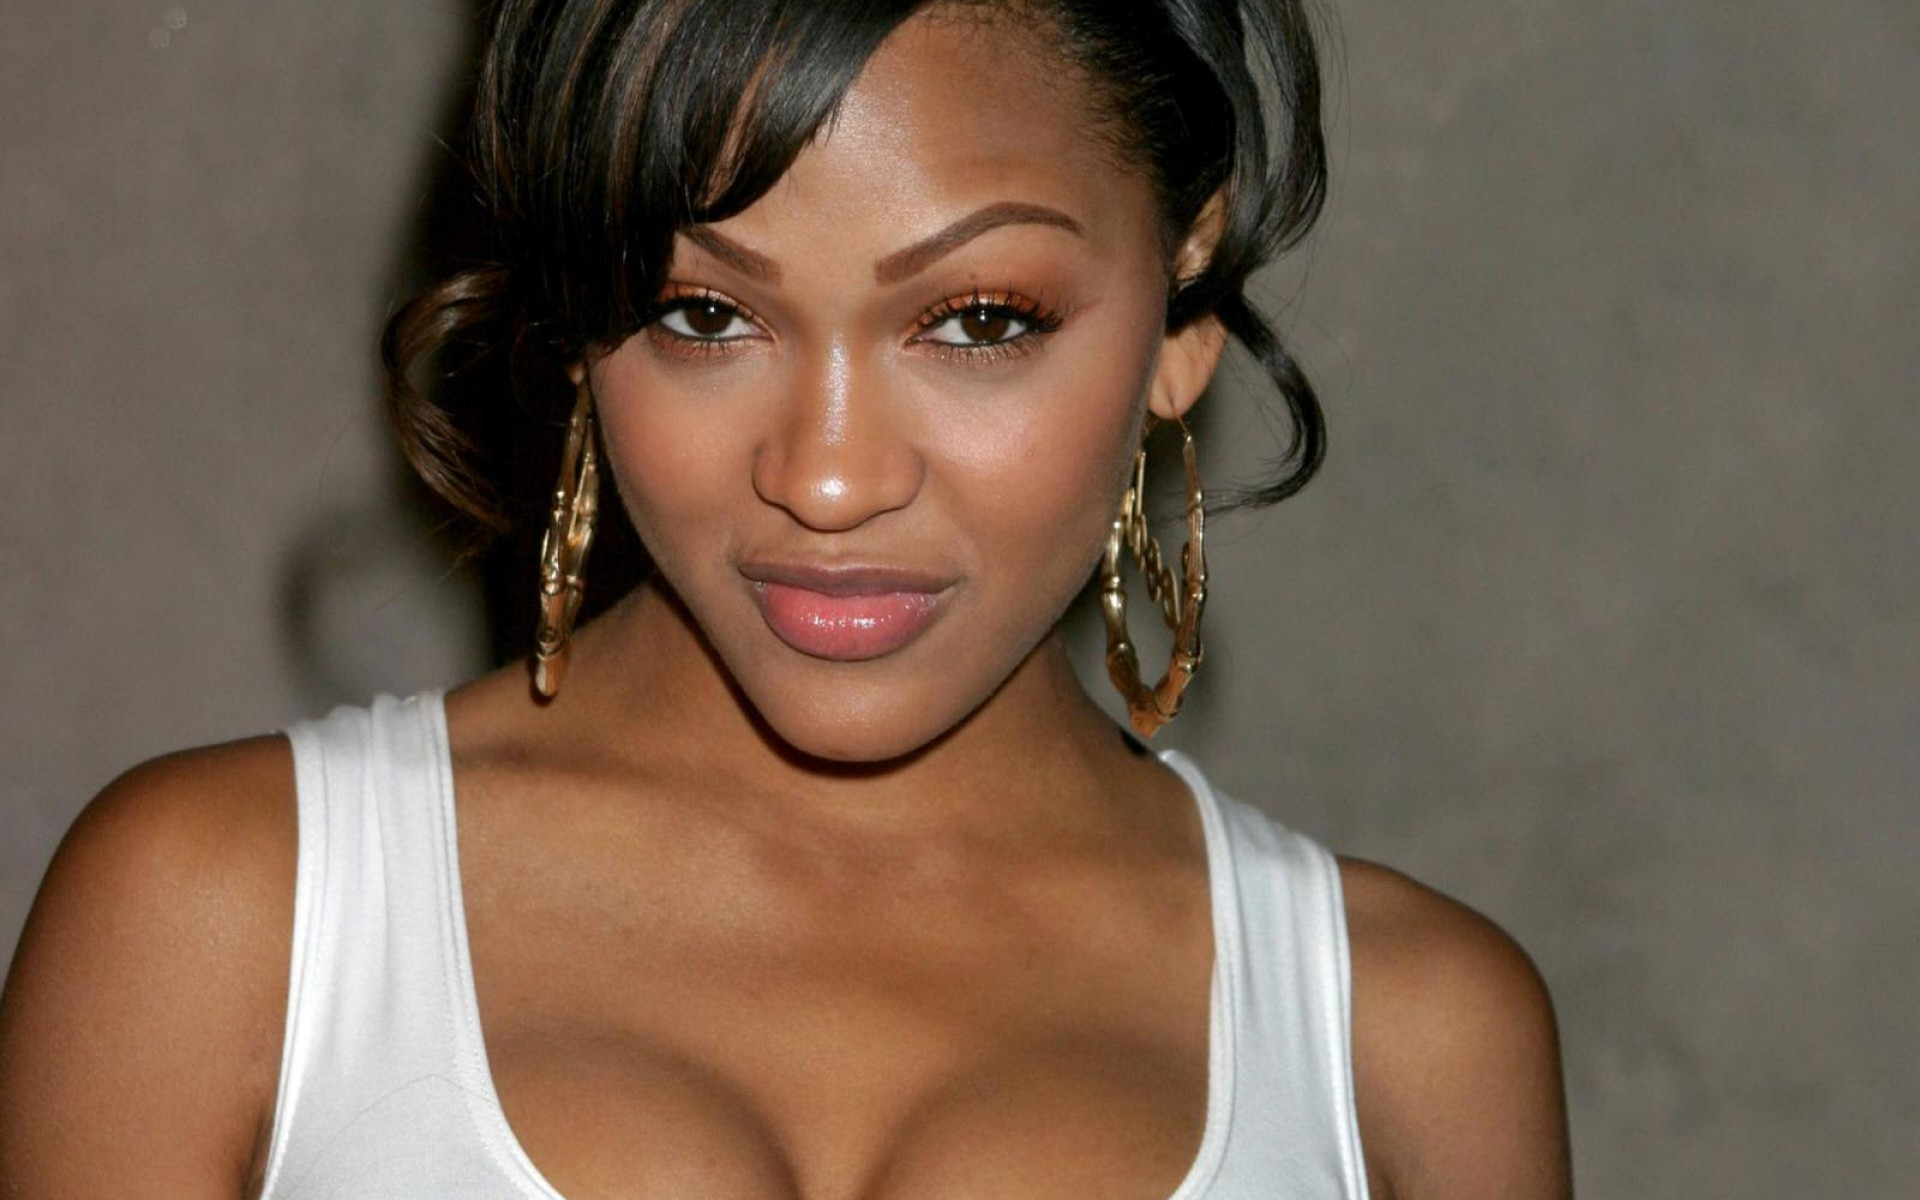 Not meagan good sexy feet removed (has